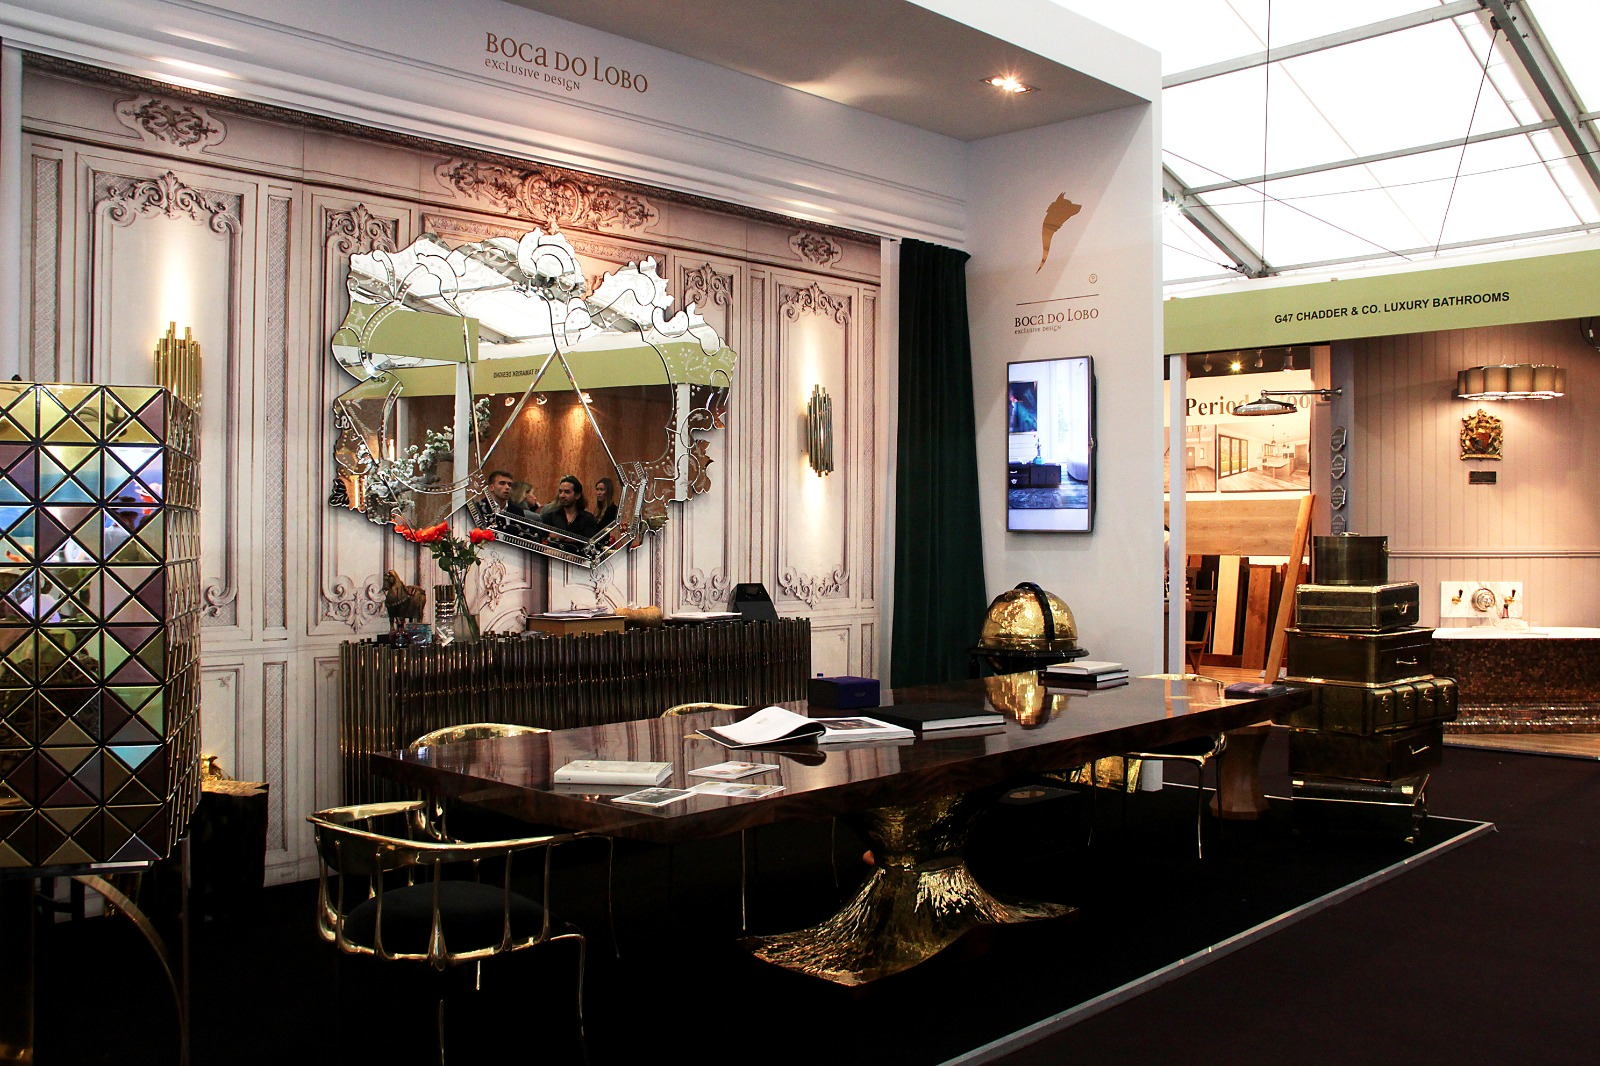 Decorex 2016 highlights 4 decorex 2016 Decorex 2016 in review: the highlights of London's trade show Decorex 2016 highlights 4